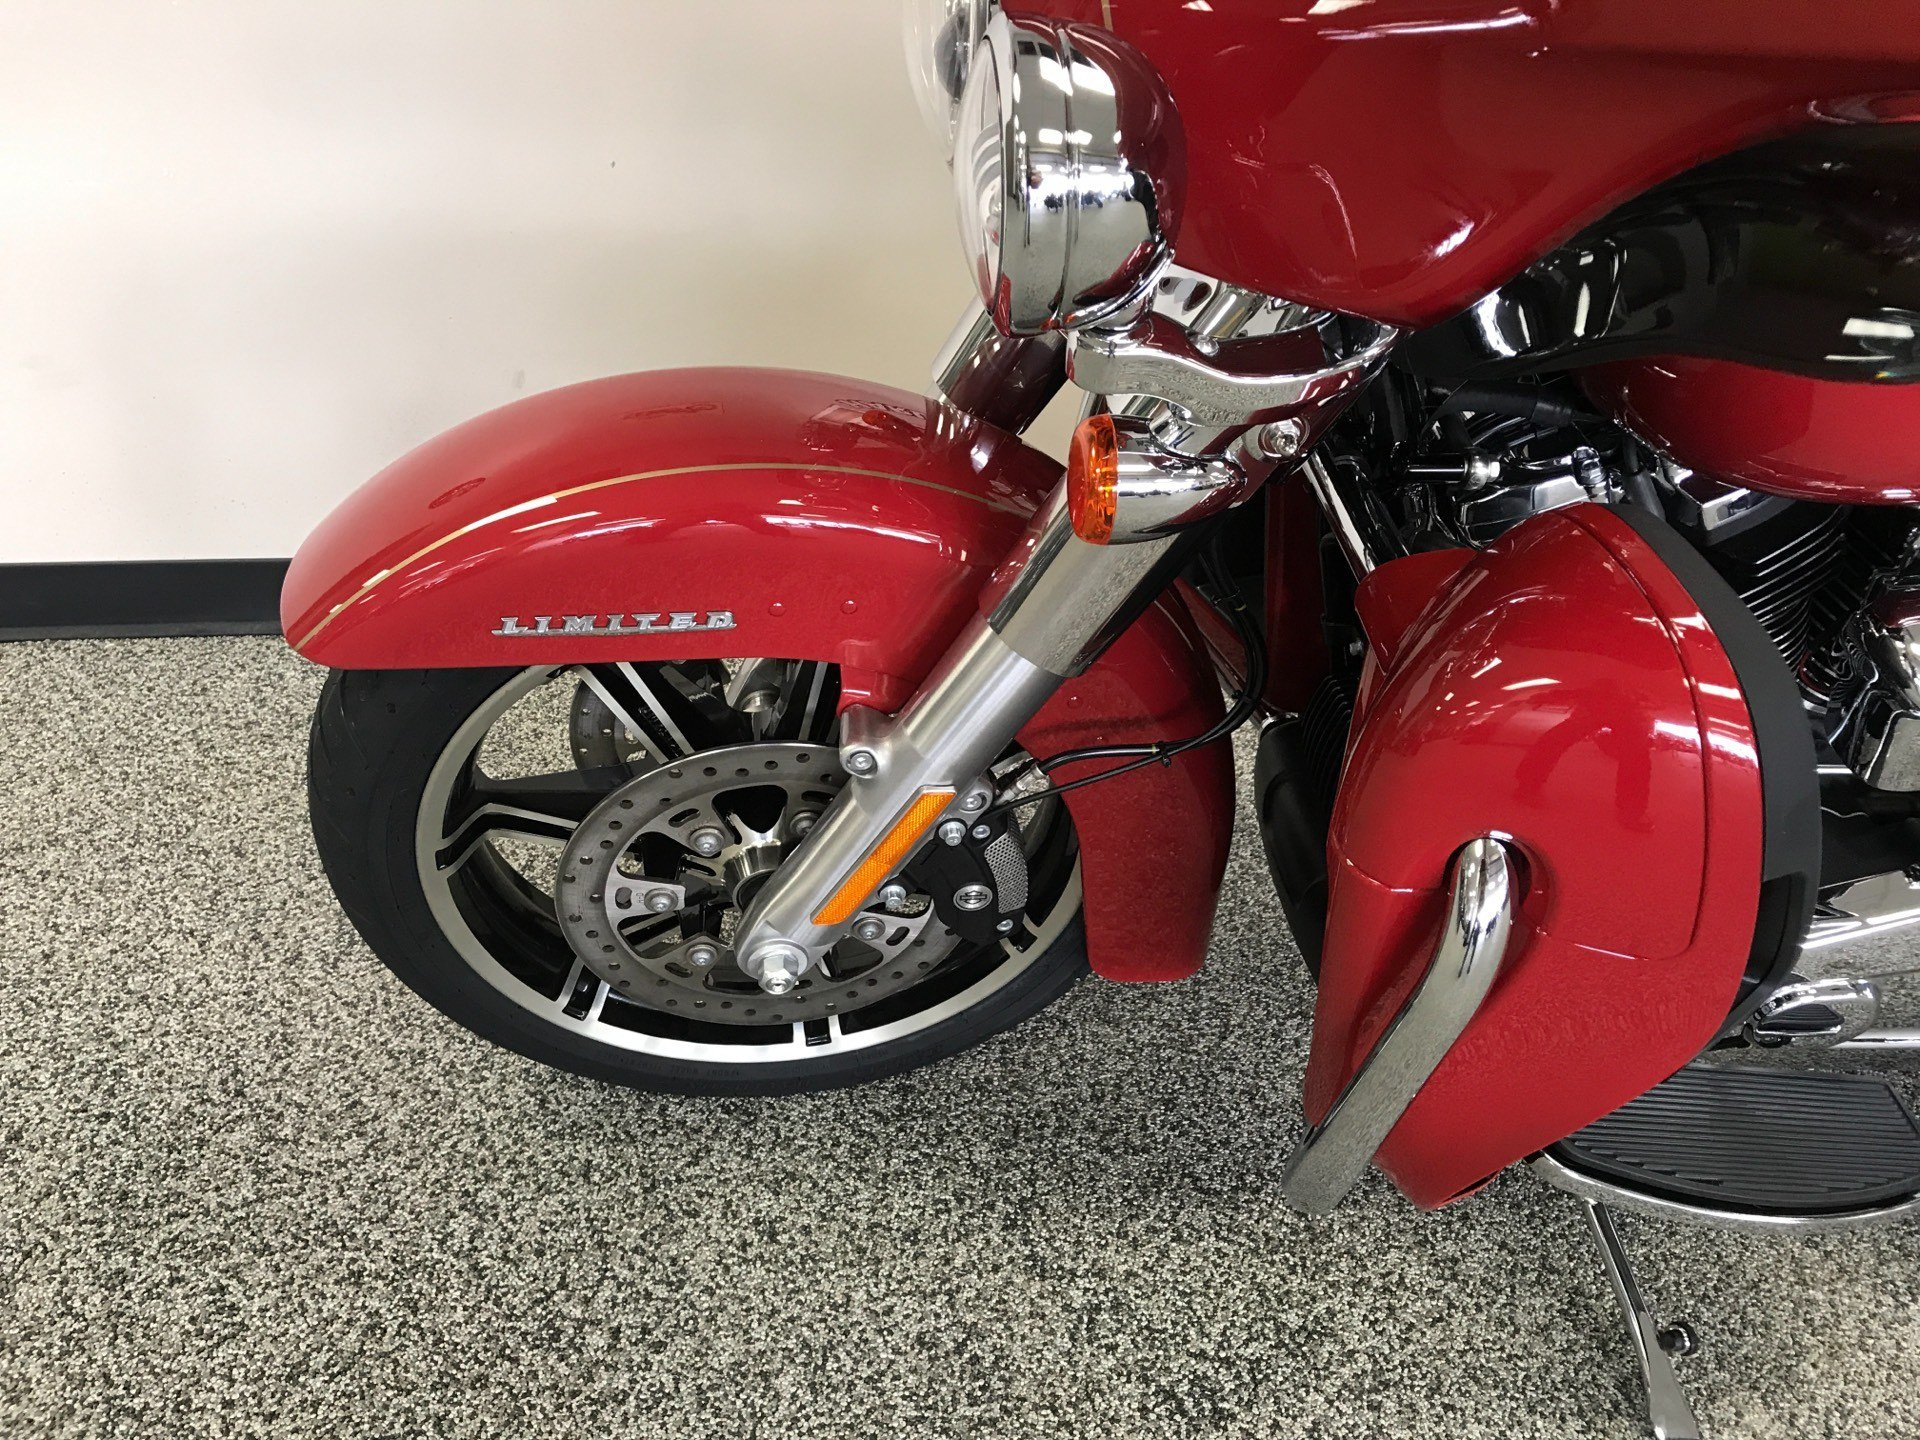 2020 Harley-Davidson ULTRA LIMITED FIREFIGHTER EDITION in Knoxville, Tennessee - Photo 20